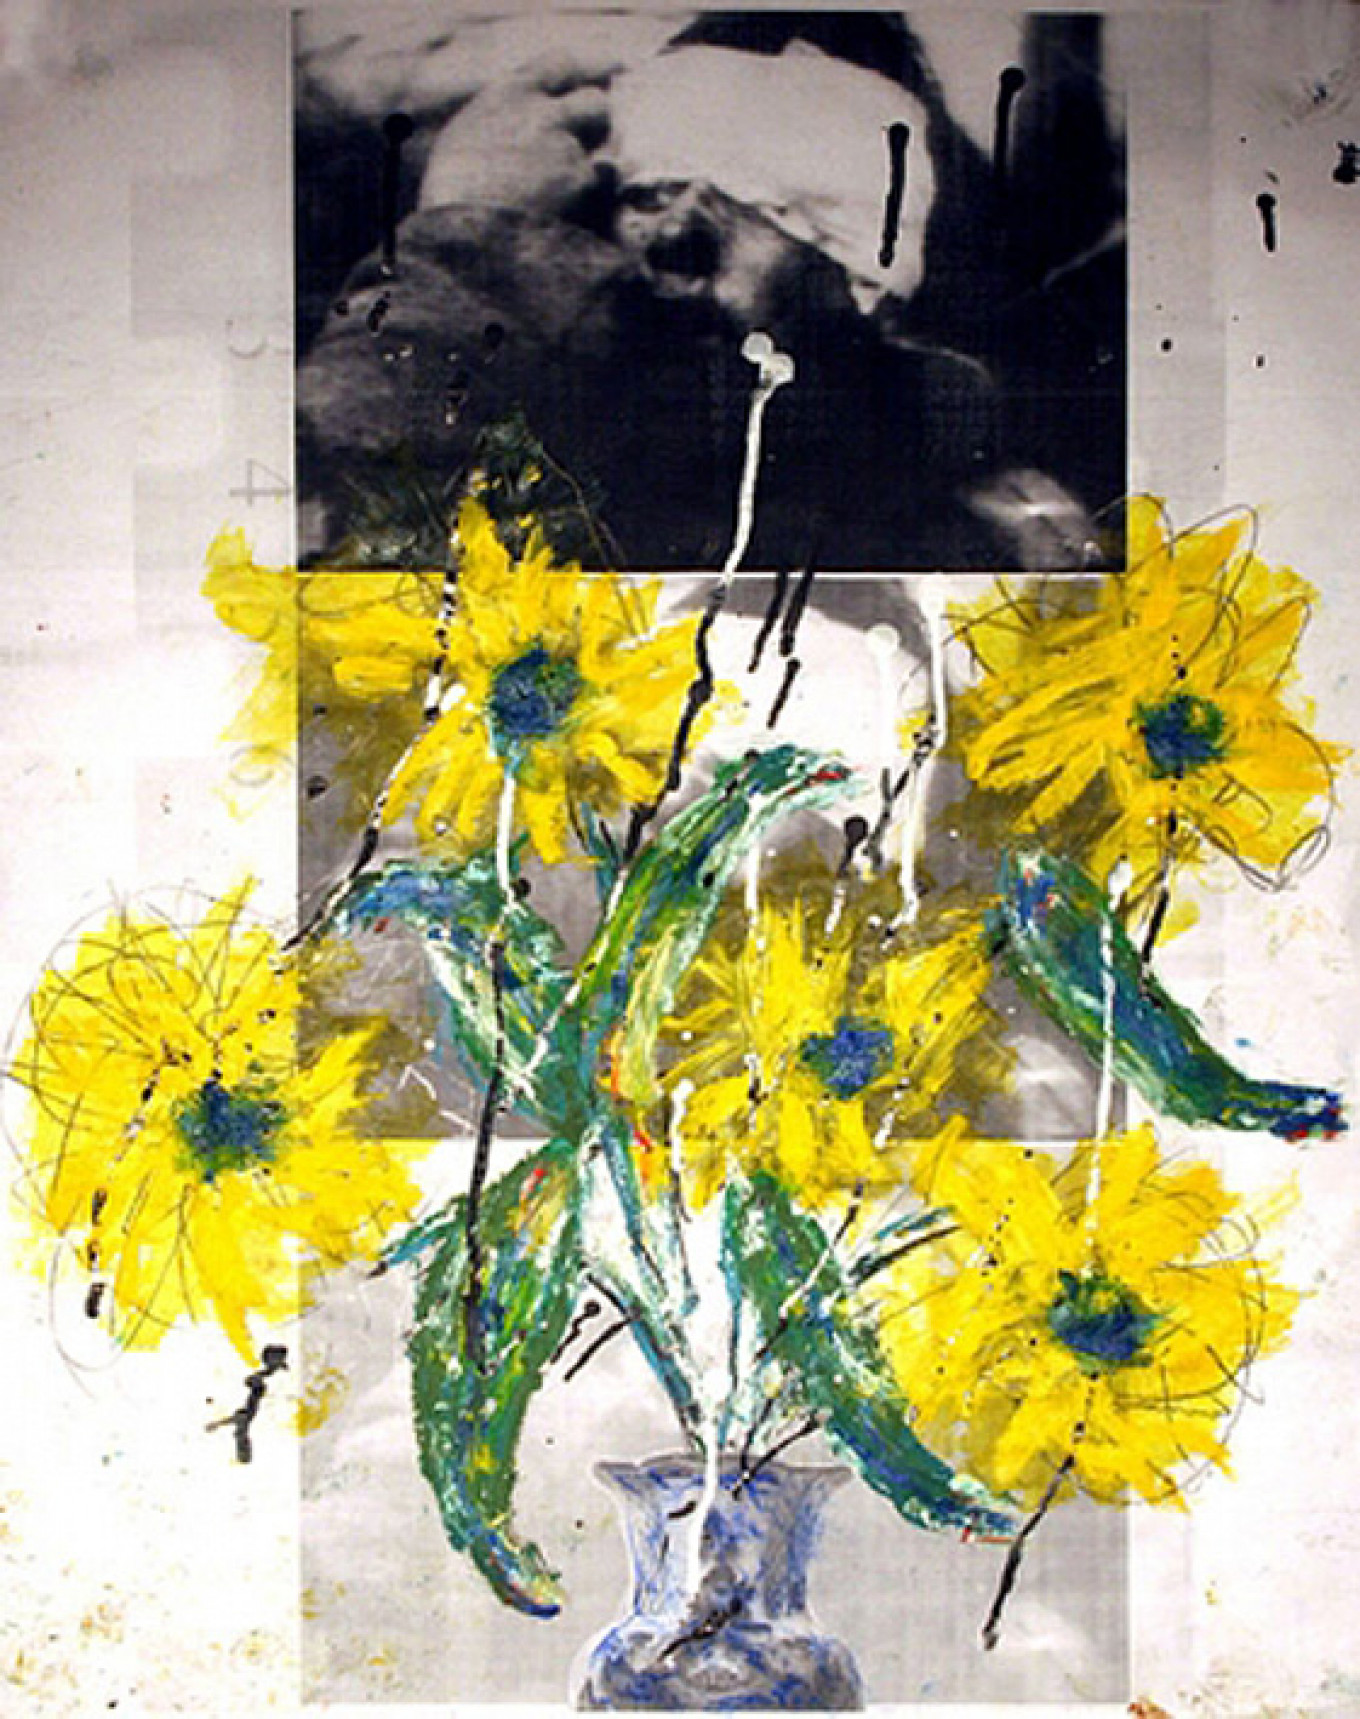 Medovoy's graphic work superimposes painted flowers on documentary footage of interviews with soldiers' families. MOSCOW MUSEUM Of MODERN ART